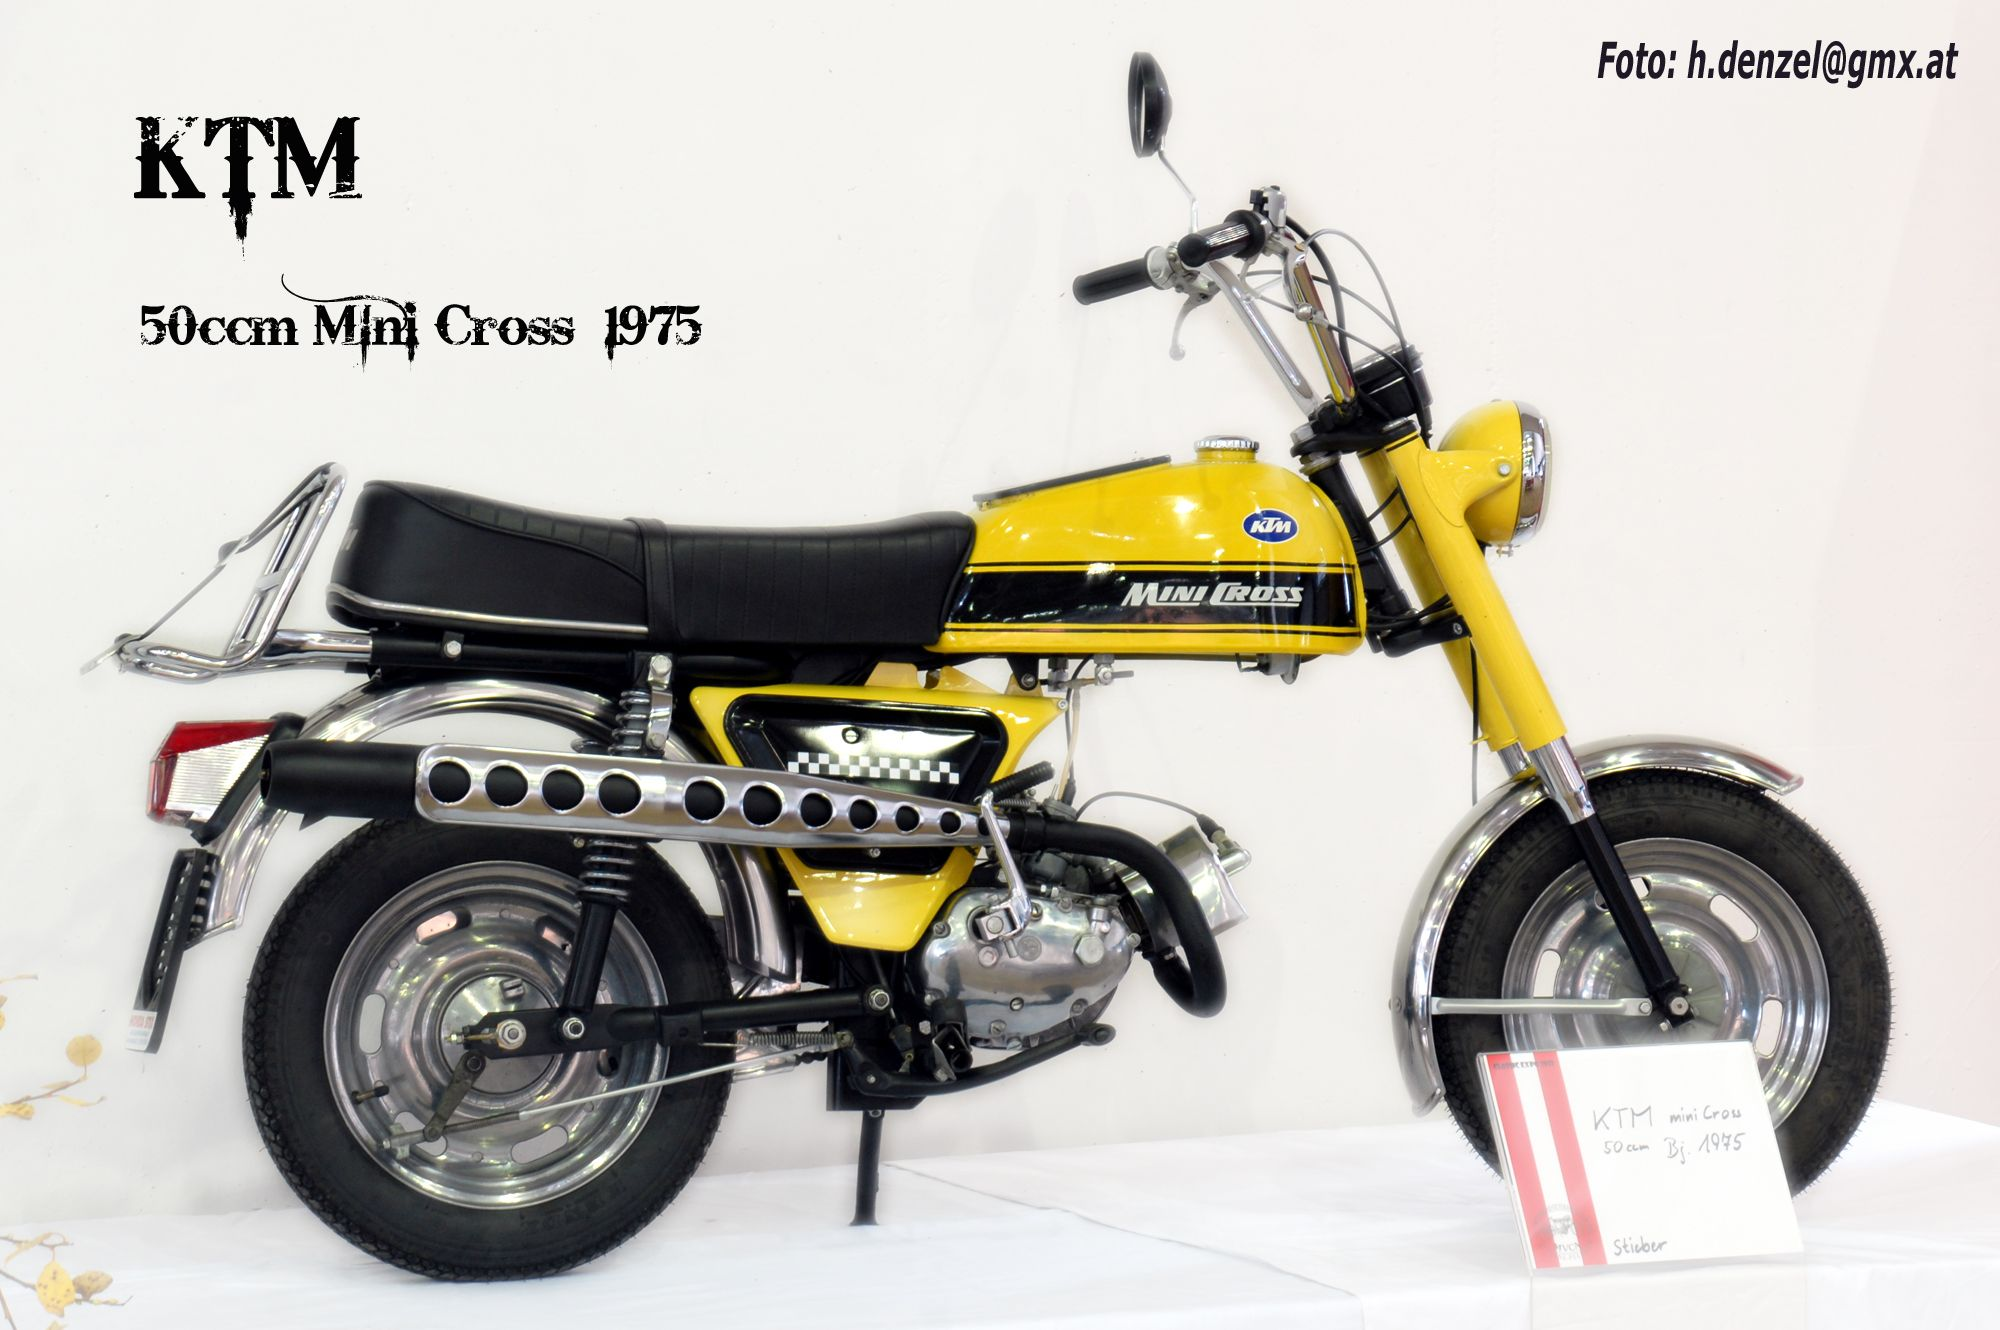 ktm 50ccm mini cross 1975 benzinradl 39 n motorcycle. Black Bedroom Furniture Sets. Home Design Ideas